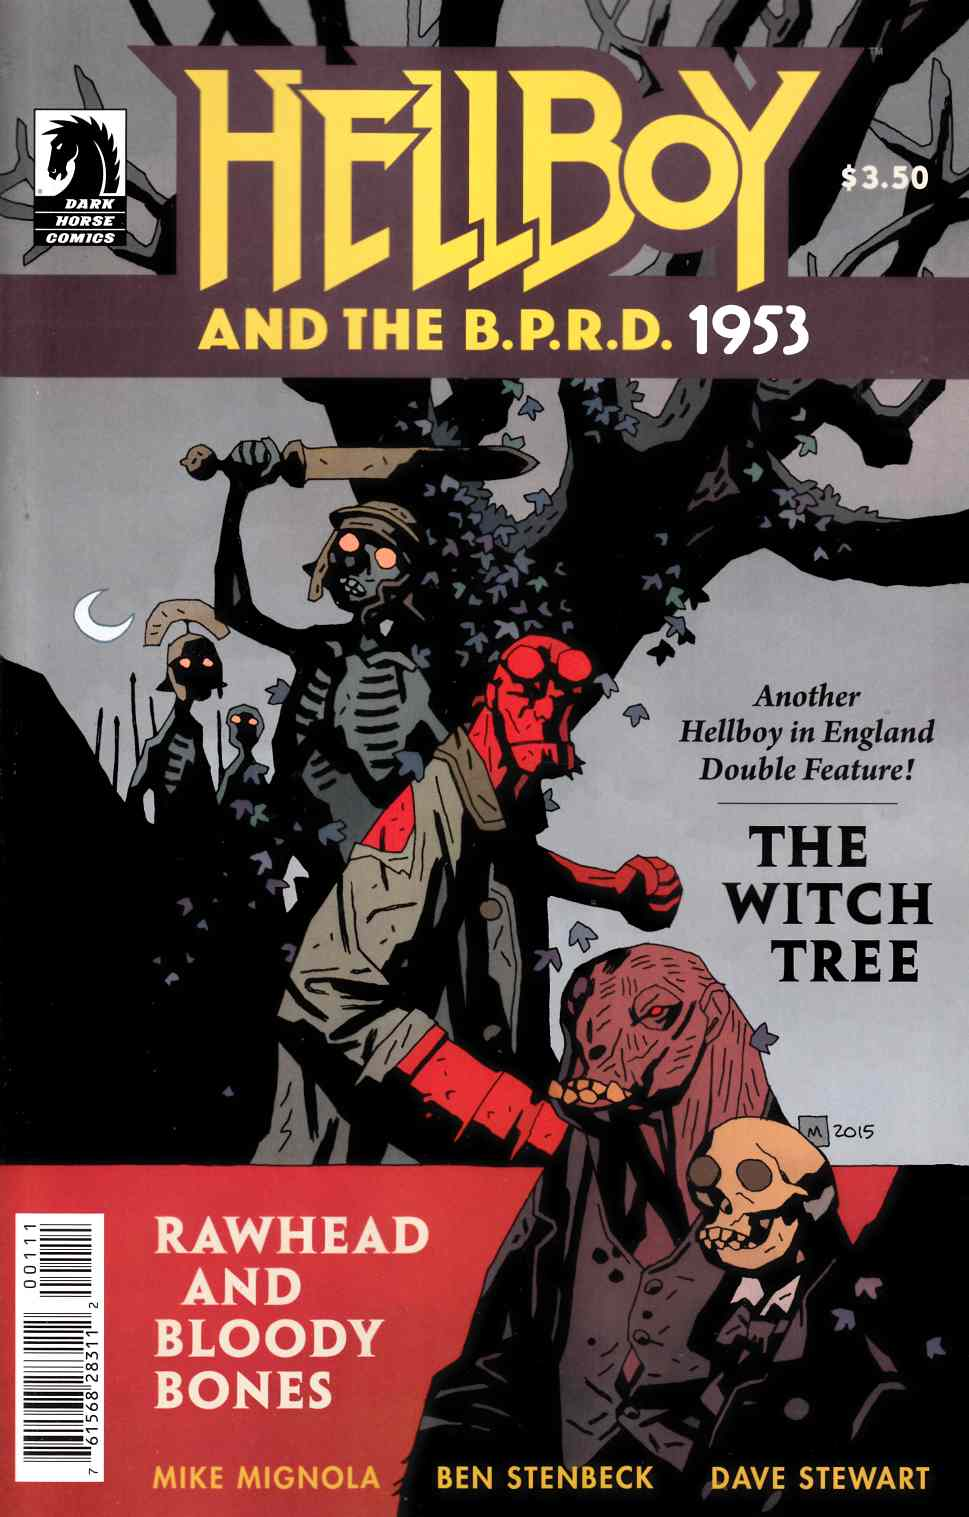 Hellboy BPRD 1953 Witch Tree Rawhead Bloody Bones [Dark Horse Comic] THUMBNAIL